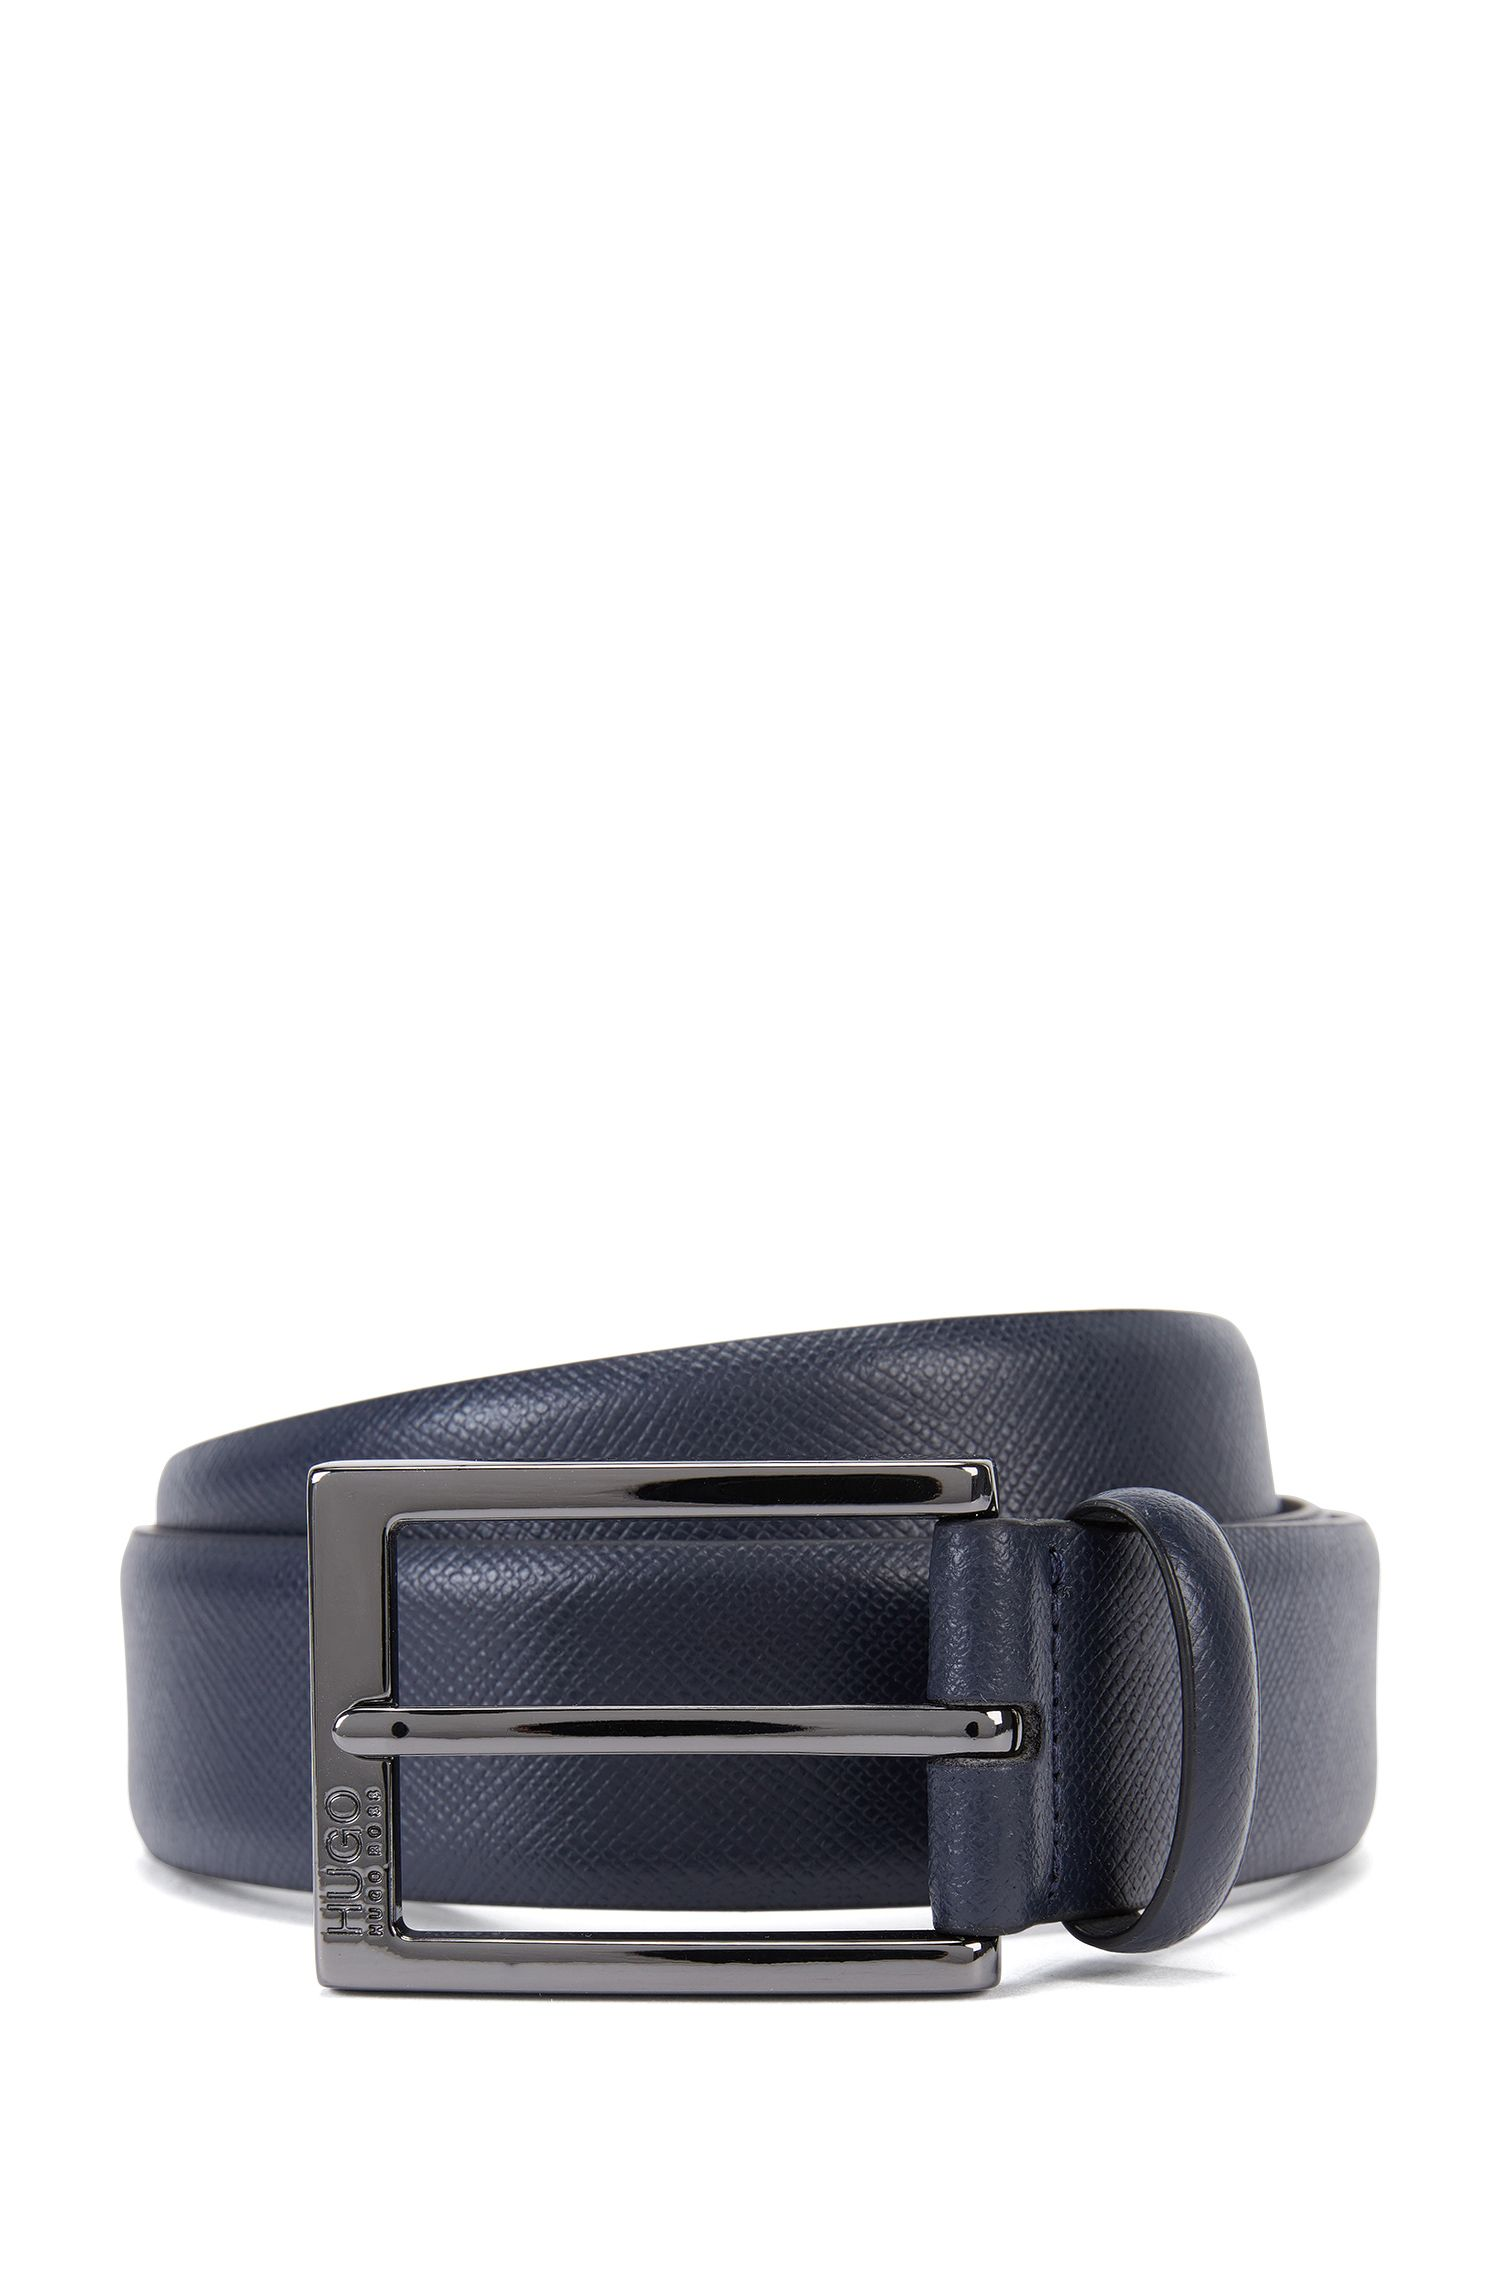 Saffiano leather belt with embossed detail